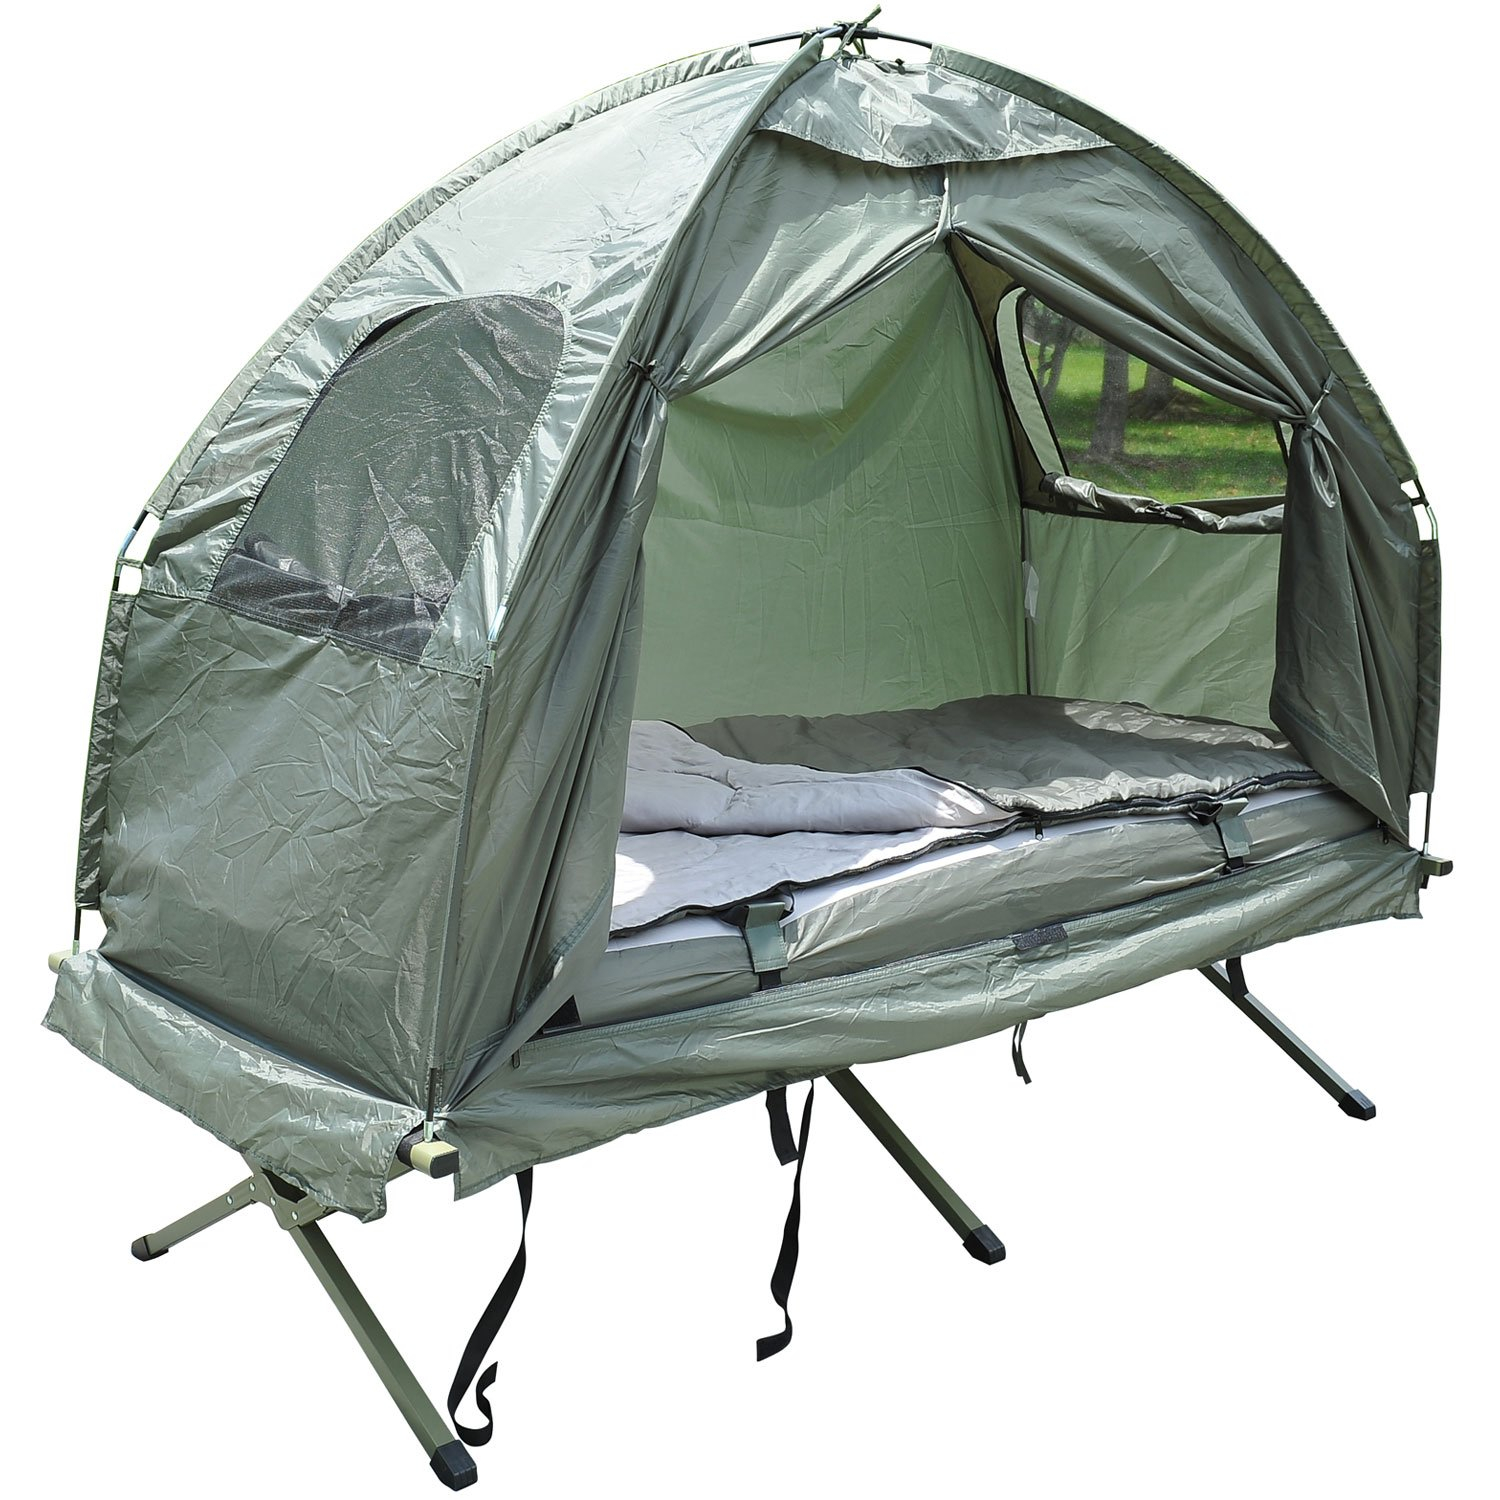 outsunny compact portable pop up tent camping cot with air. Black Bedroom Furniture Sets. Home Design Ideas